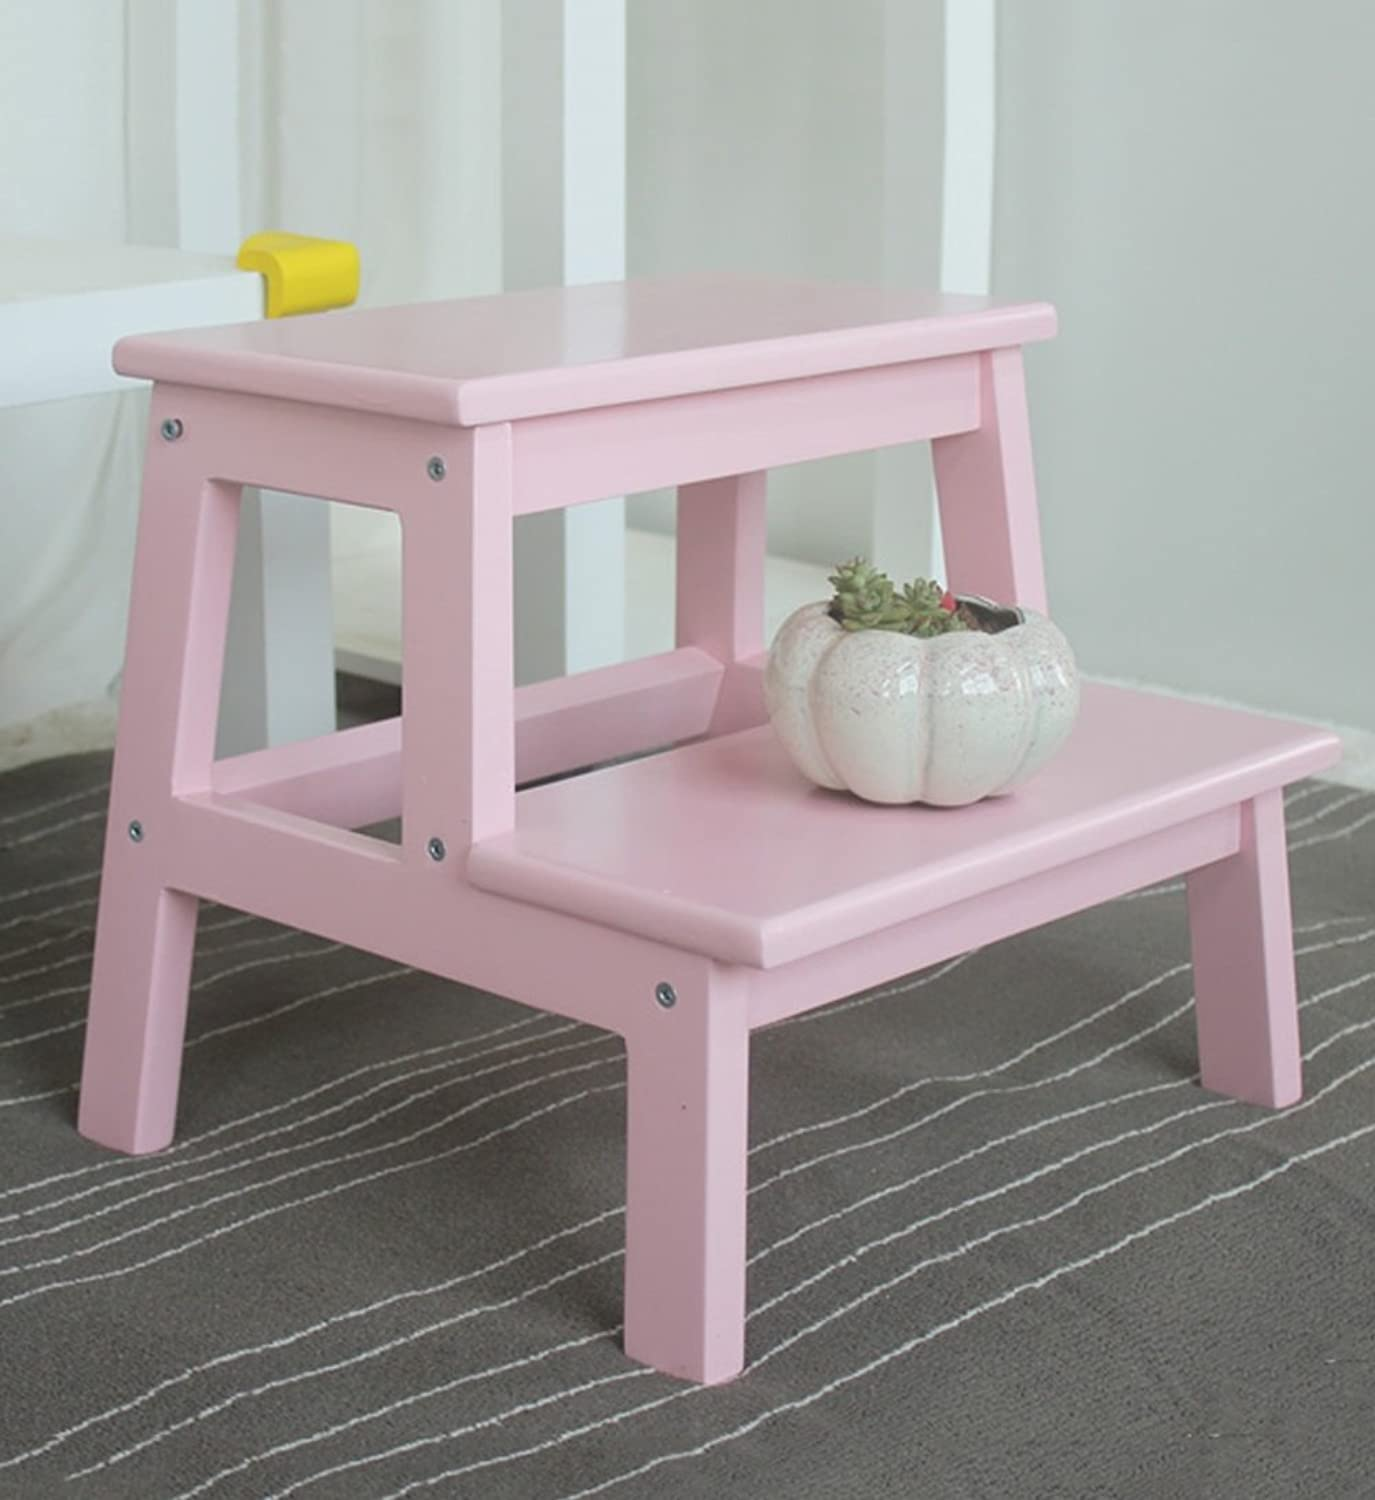 Djyyh Ladder Step Stool Solid Wood Household Small Mazar Changing His shoes Stool Stairs Simple 2-Tier Ladder, 6 colors Optional (color   Pink)